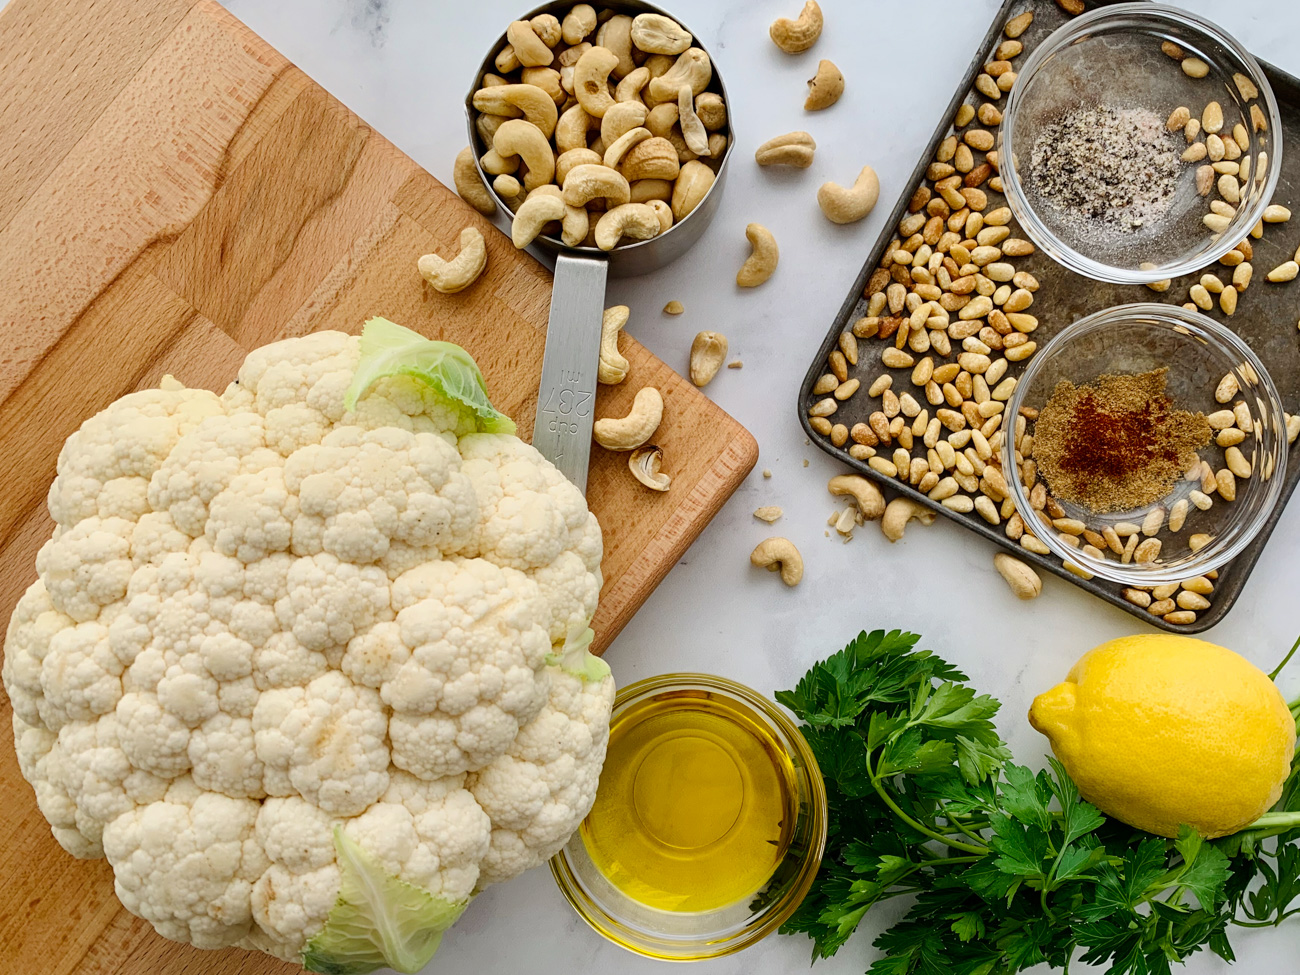 Ingredients for paleo roasted cauliflower hummus